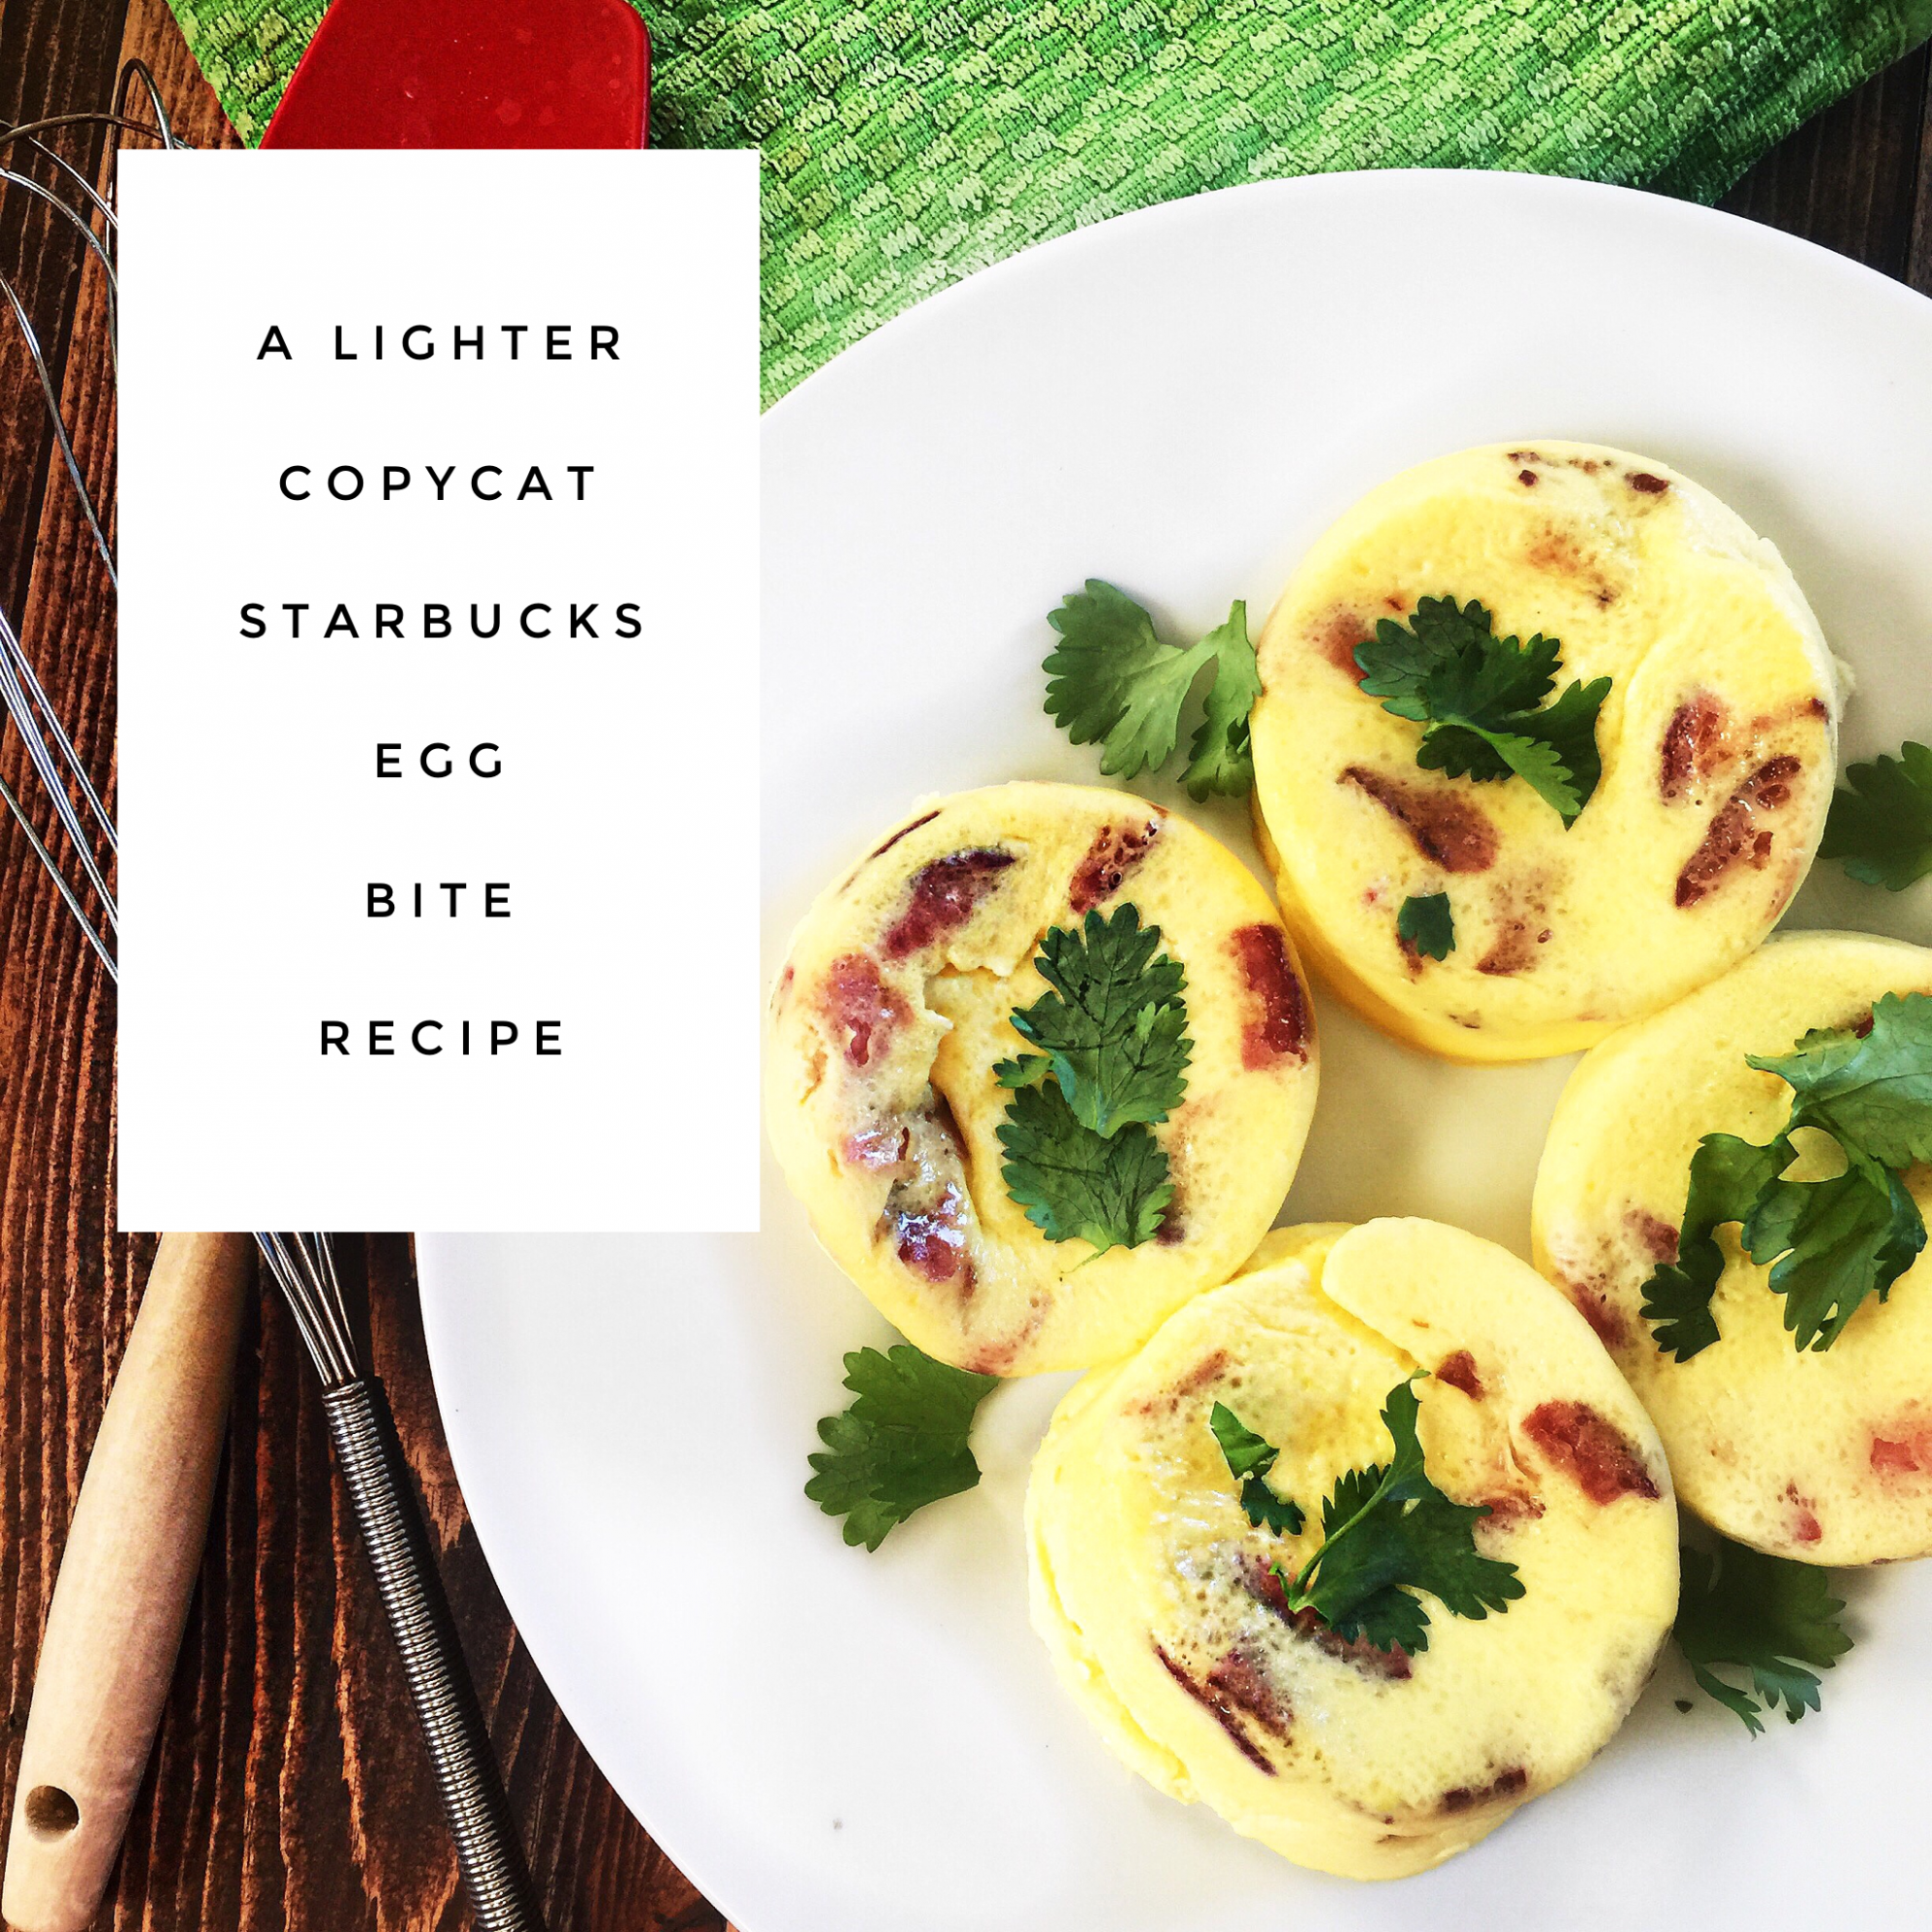 A Lighter Copycat Starbuck Egg Bites Recipe - Recipes Egg Bites